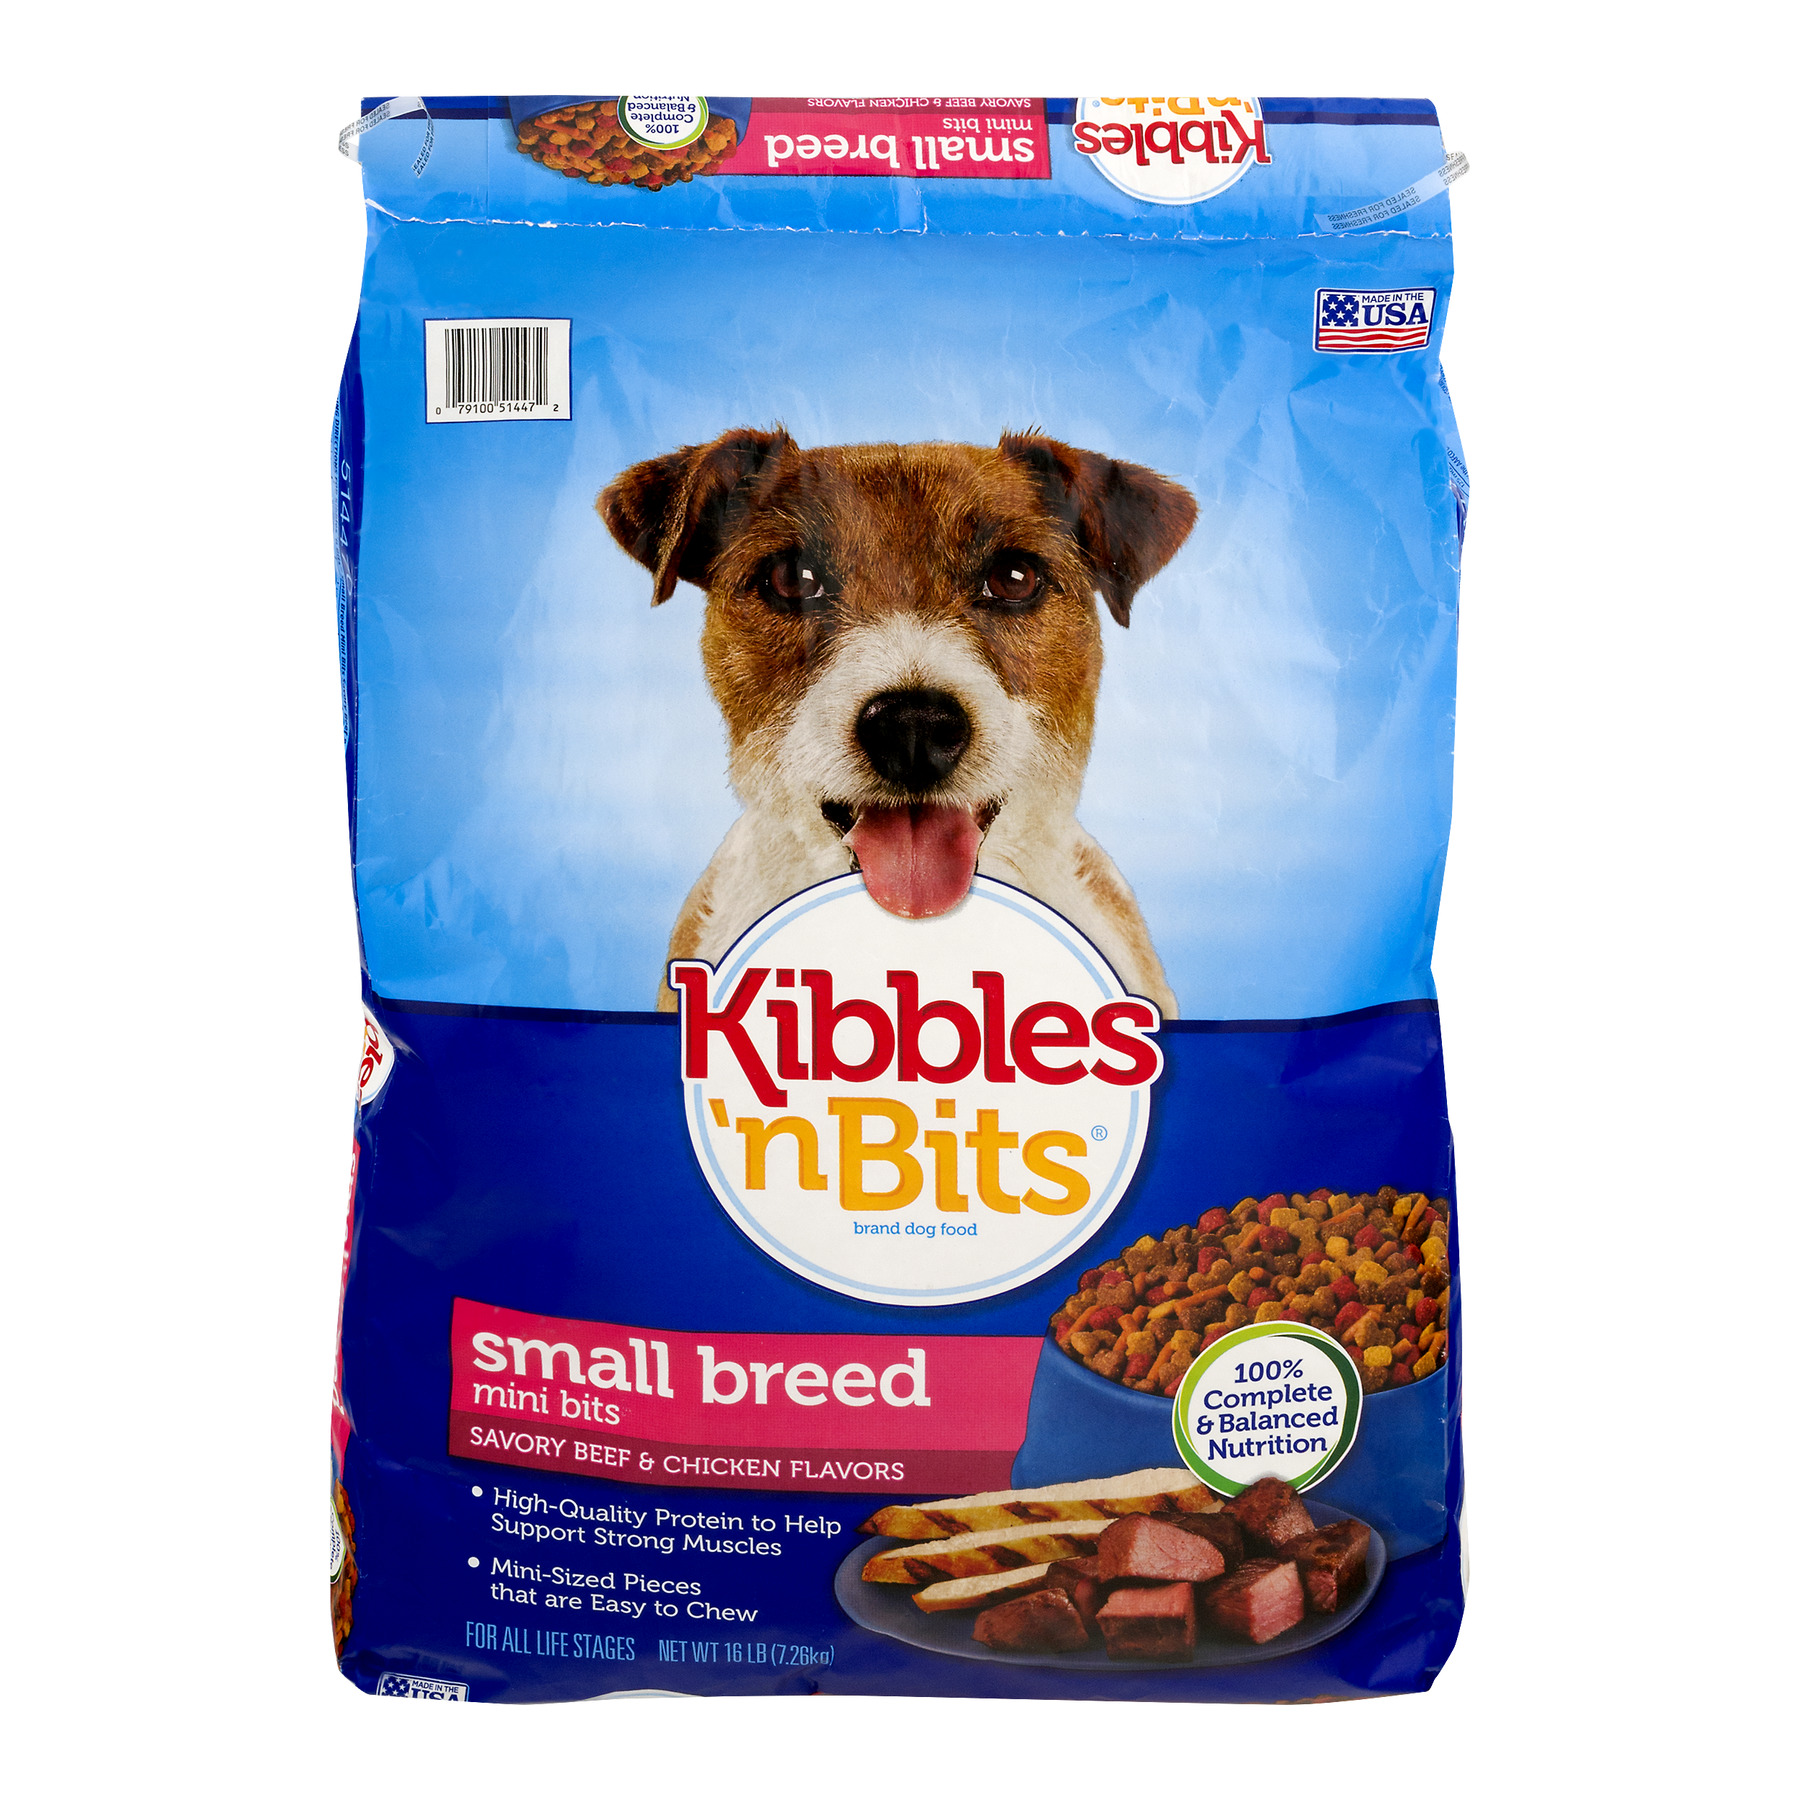 Kibbles 'n Bits Mini Bites Small Breed Savory Beef and Chicken Flavors Dog Food, 16-Pound by Big Heart Pet Brands